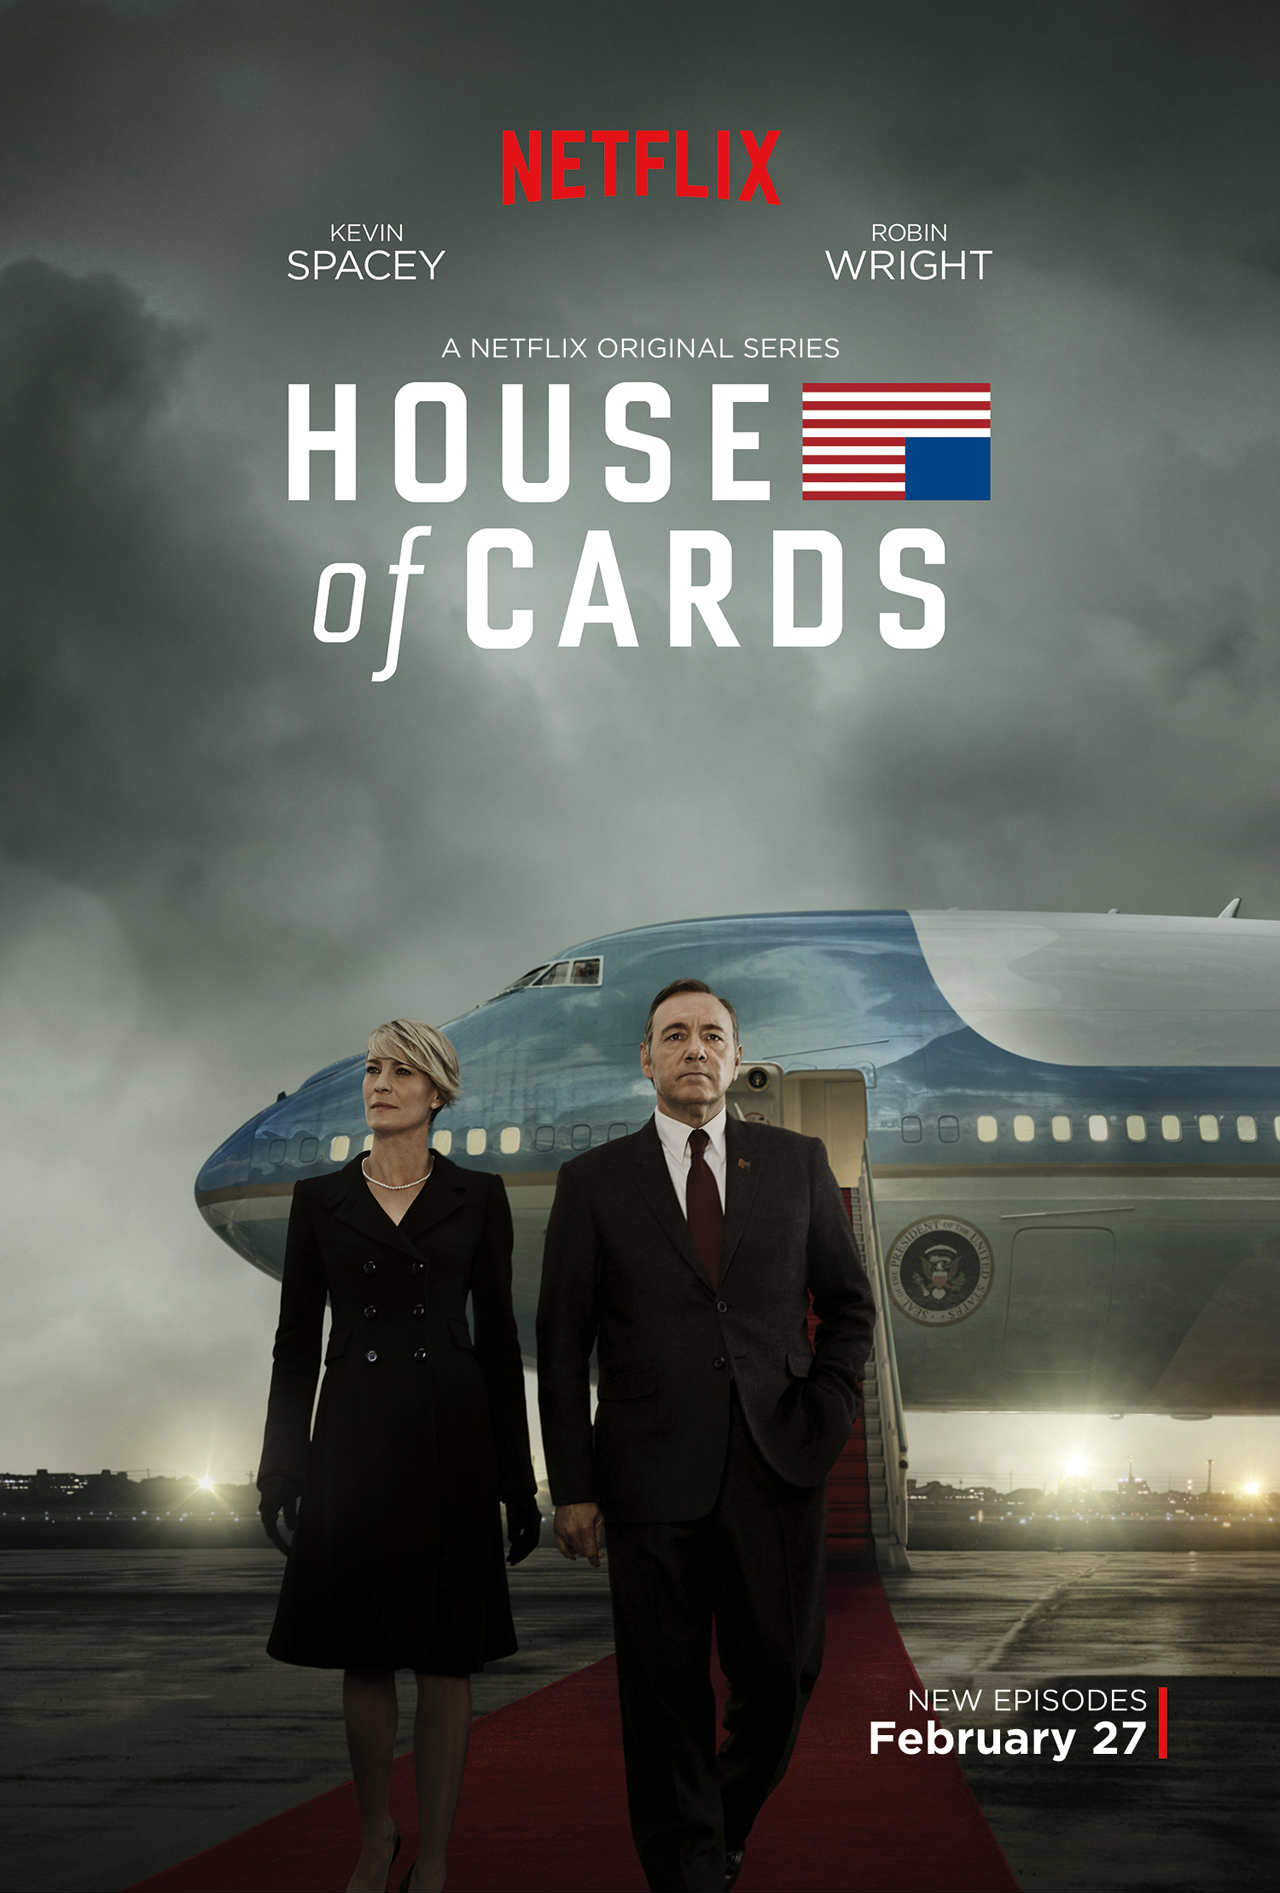 House Of Cards Season 3 Gets Tantalizing New Trailer Ahead Of Friday Premiere